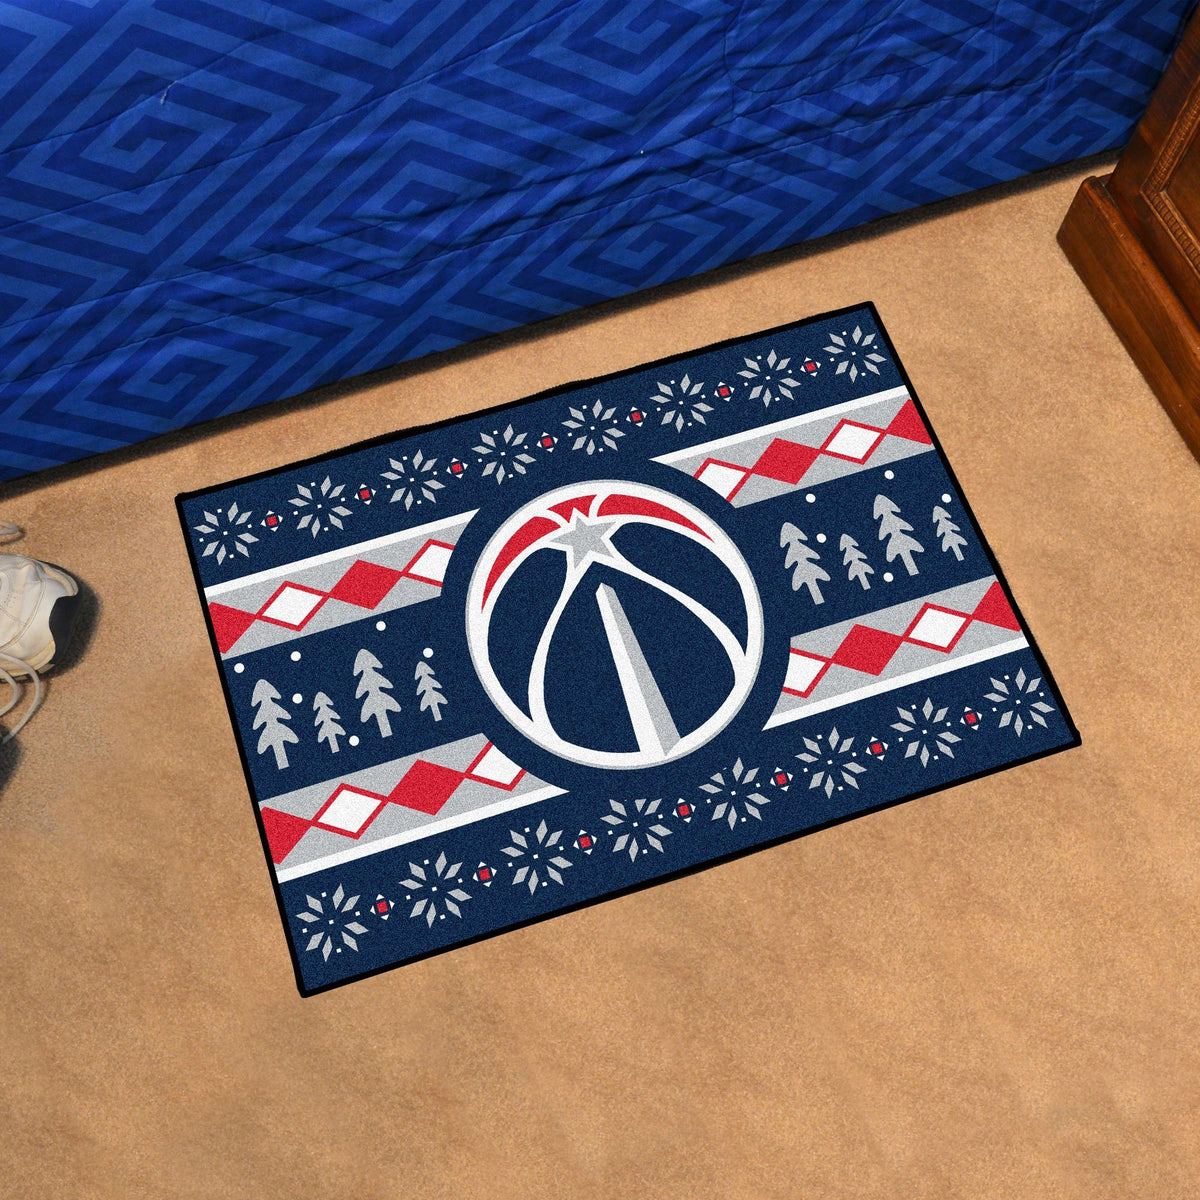 NBA - Holiday Sweater Starter Mat NBA Mats, Rectangular Mats, Holiday Sweater Starter Mat, NBA, Home Fan Mats Washington Wizards